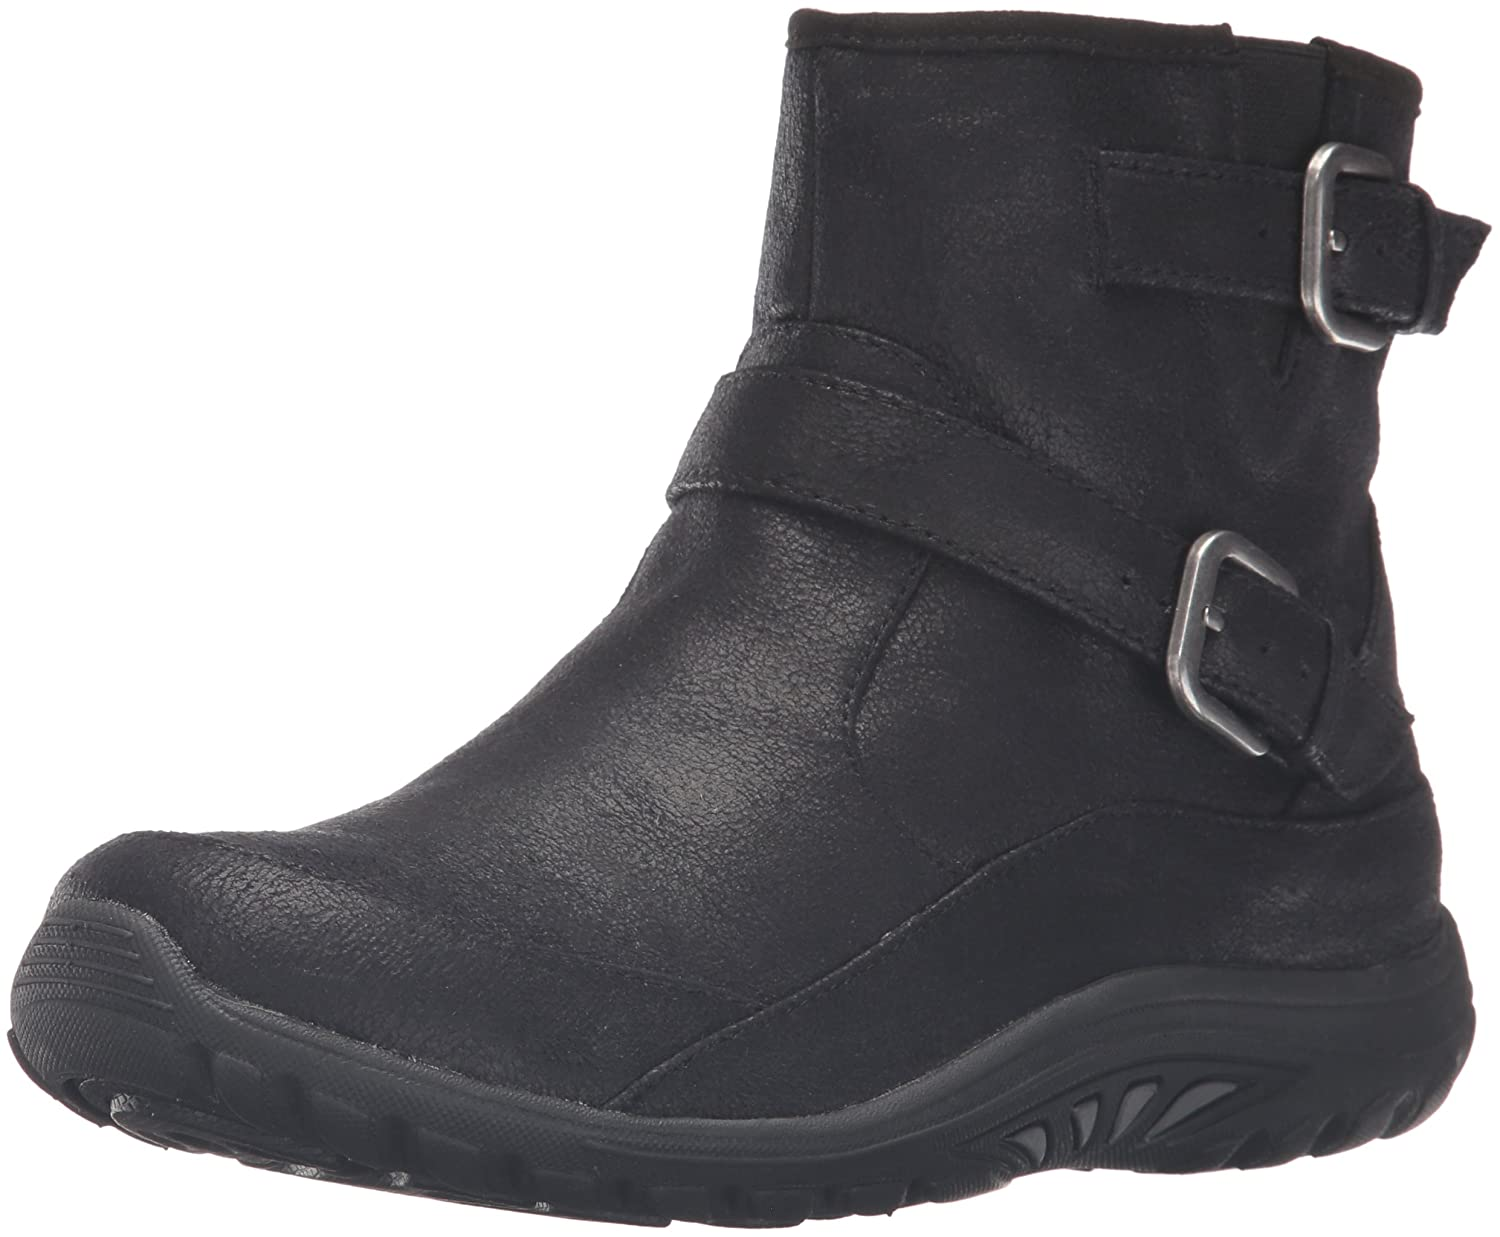 Skechers Womens Reggae Fest-Urban Dread Ankle Bootie  5.5 B(M) US|Black